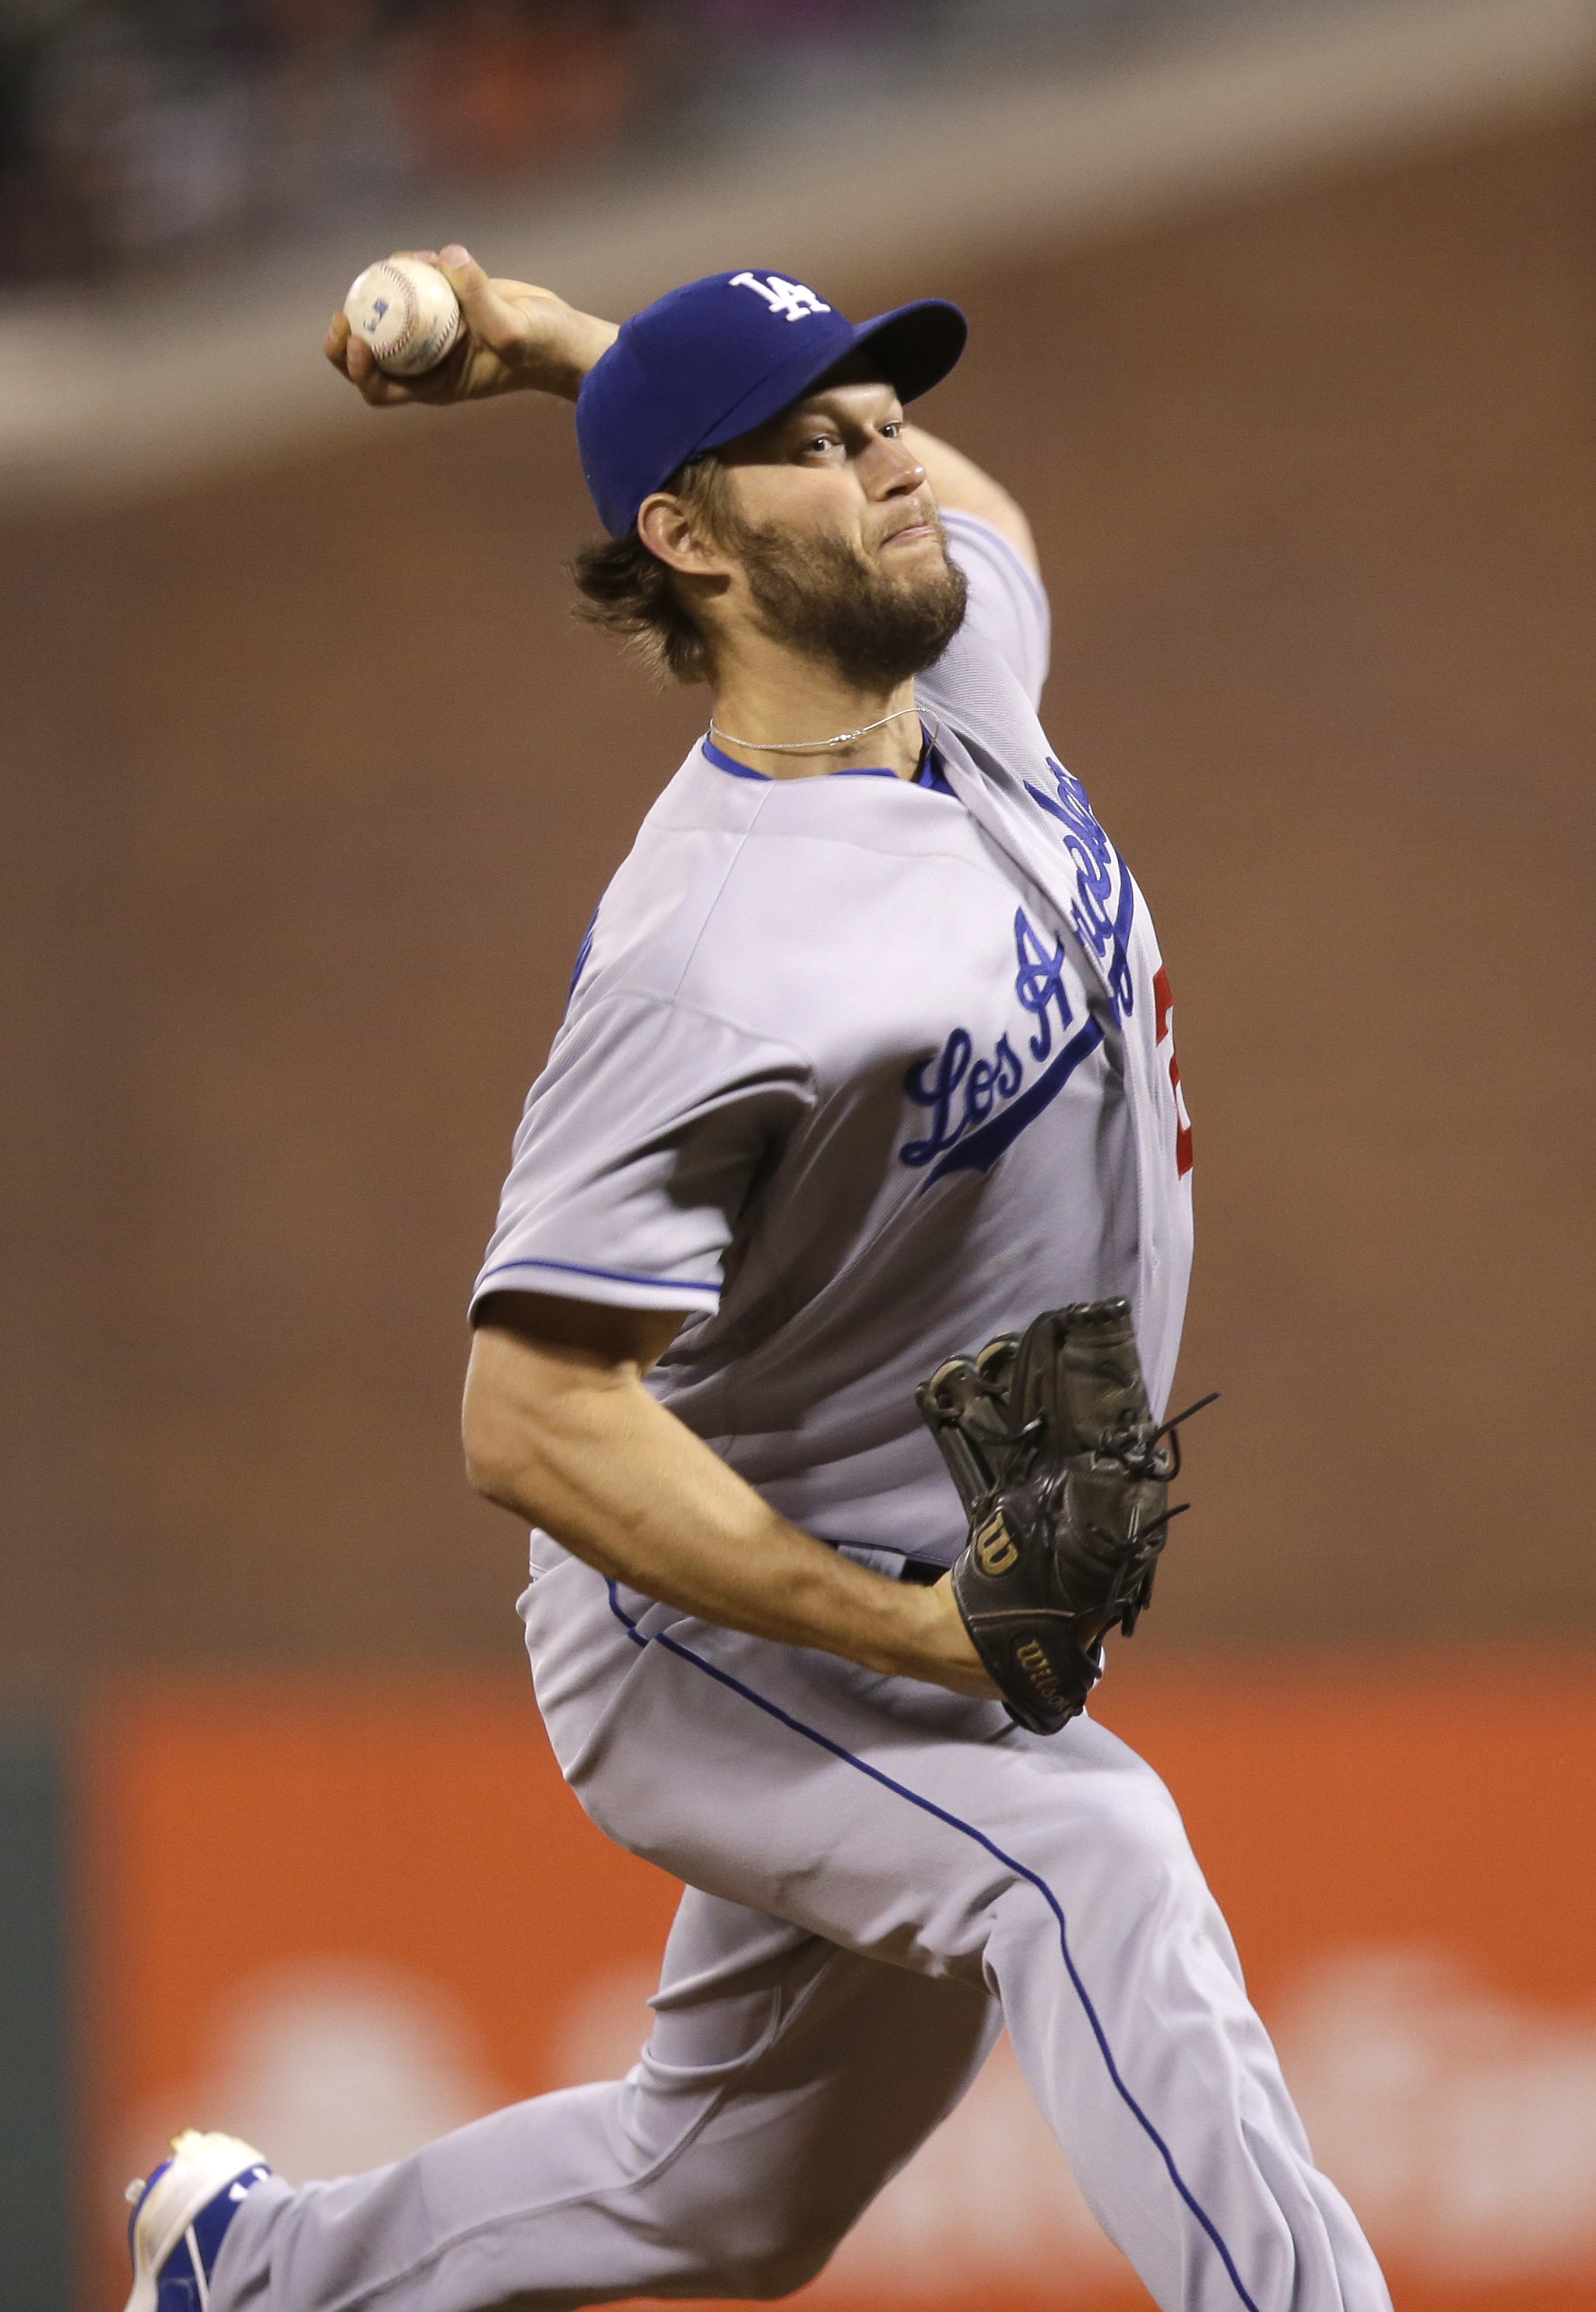 Los Angeles Dodgers starting pitcher Clayton Kershaw throws to the San Francisco Giants during the fifth inning of a baseball game Friday, June 10, 2016, in San Francisco. (AP Photo/Marcio Jose Sanchez)